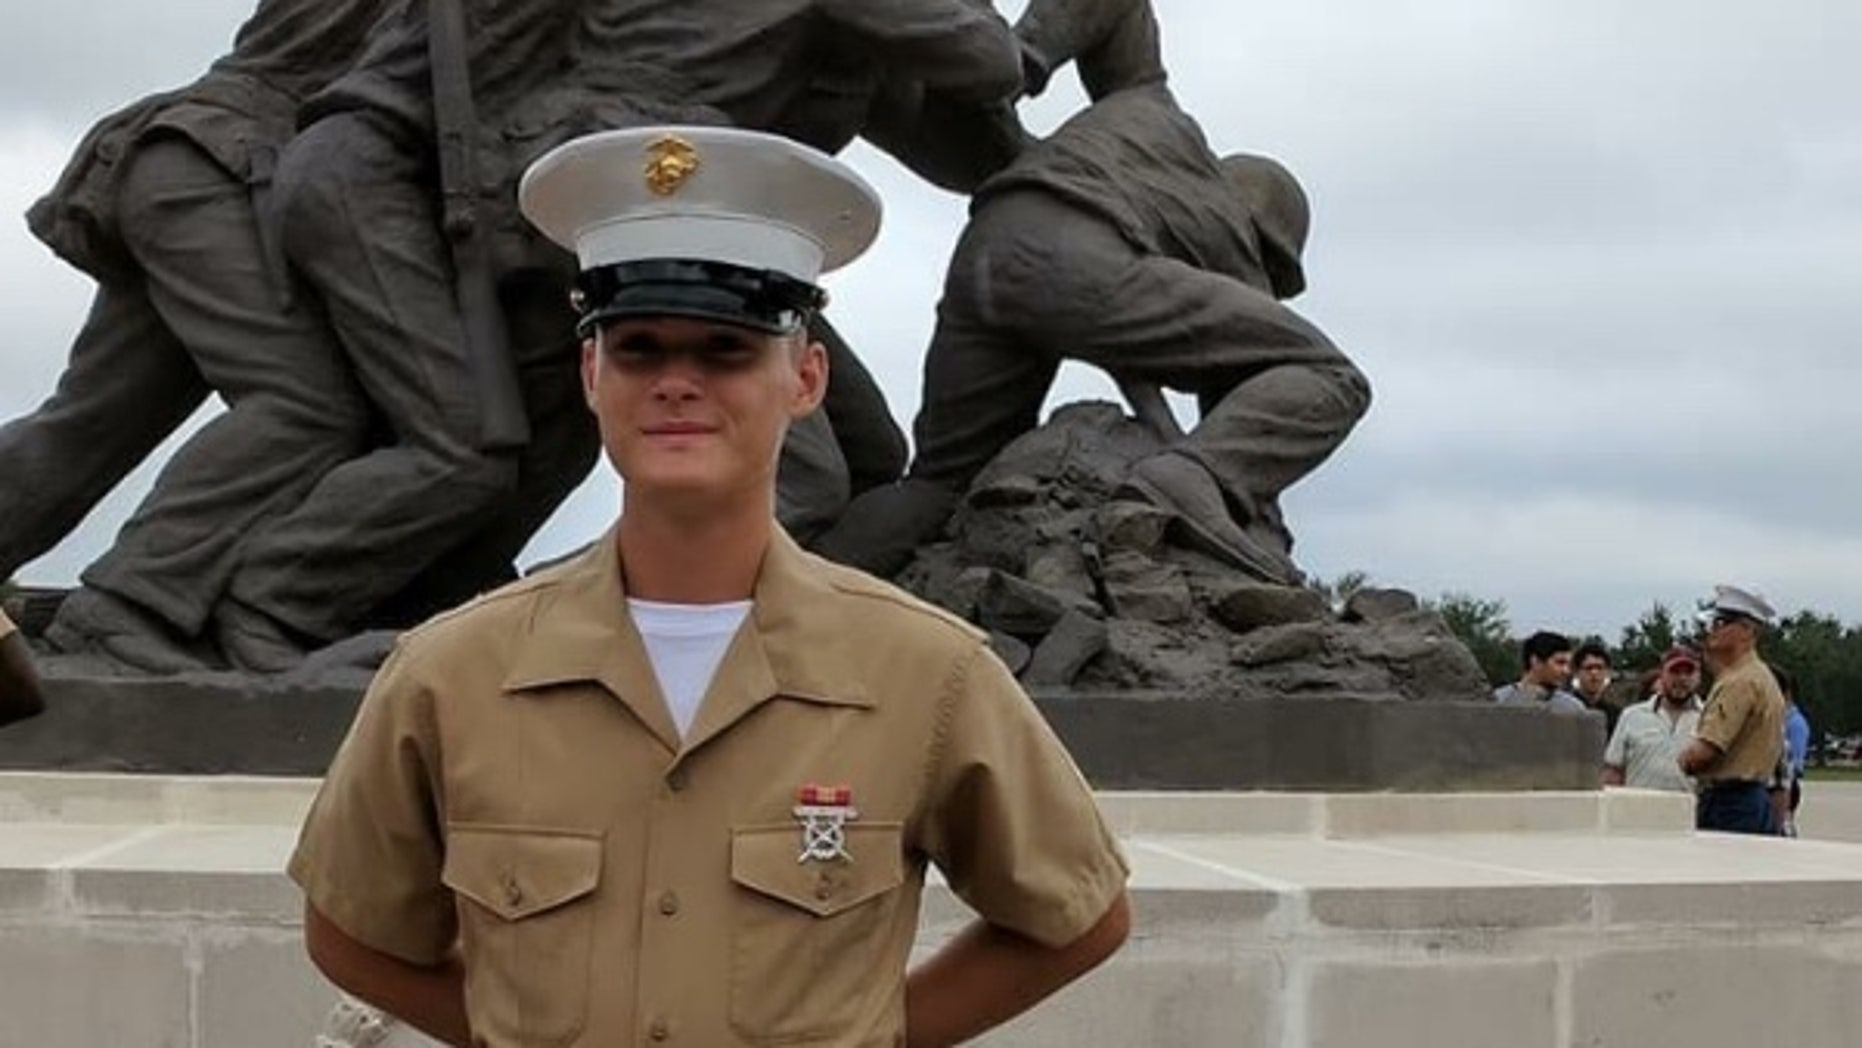 Pfc. Ethan Andrew Barclay-Weberpal, 18, was fatally stabbed Jan. 16, by fellow Marine Raymond Begay, in what Begay contends was an accident, authorities say.